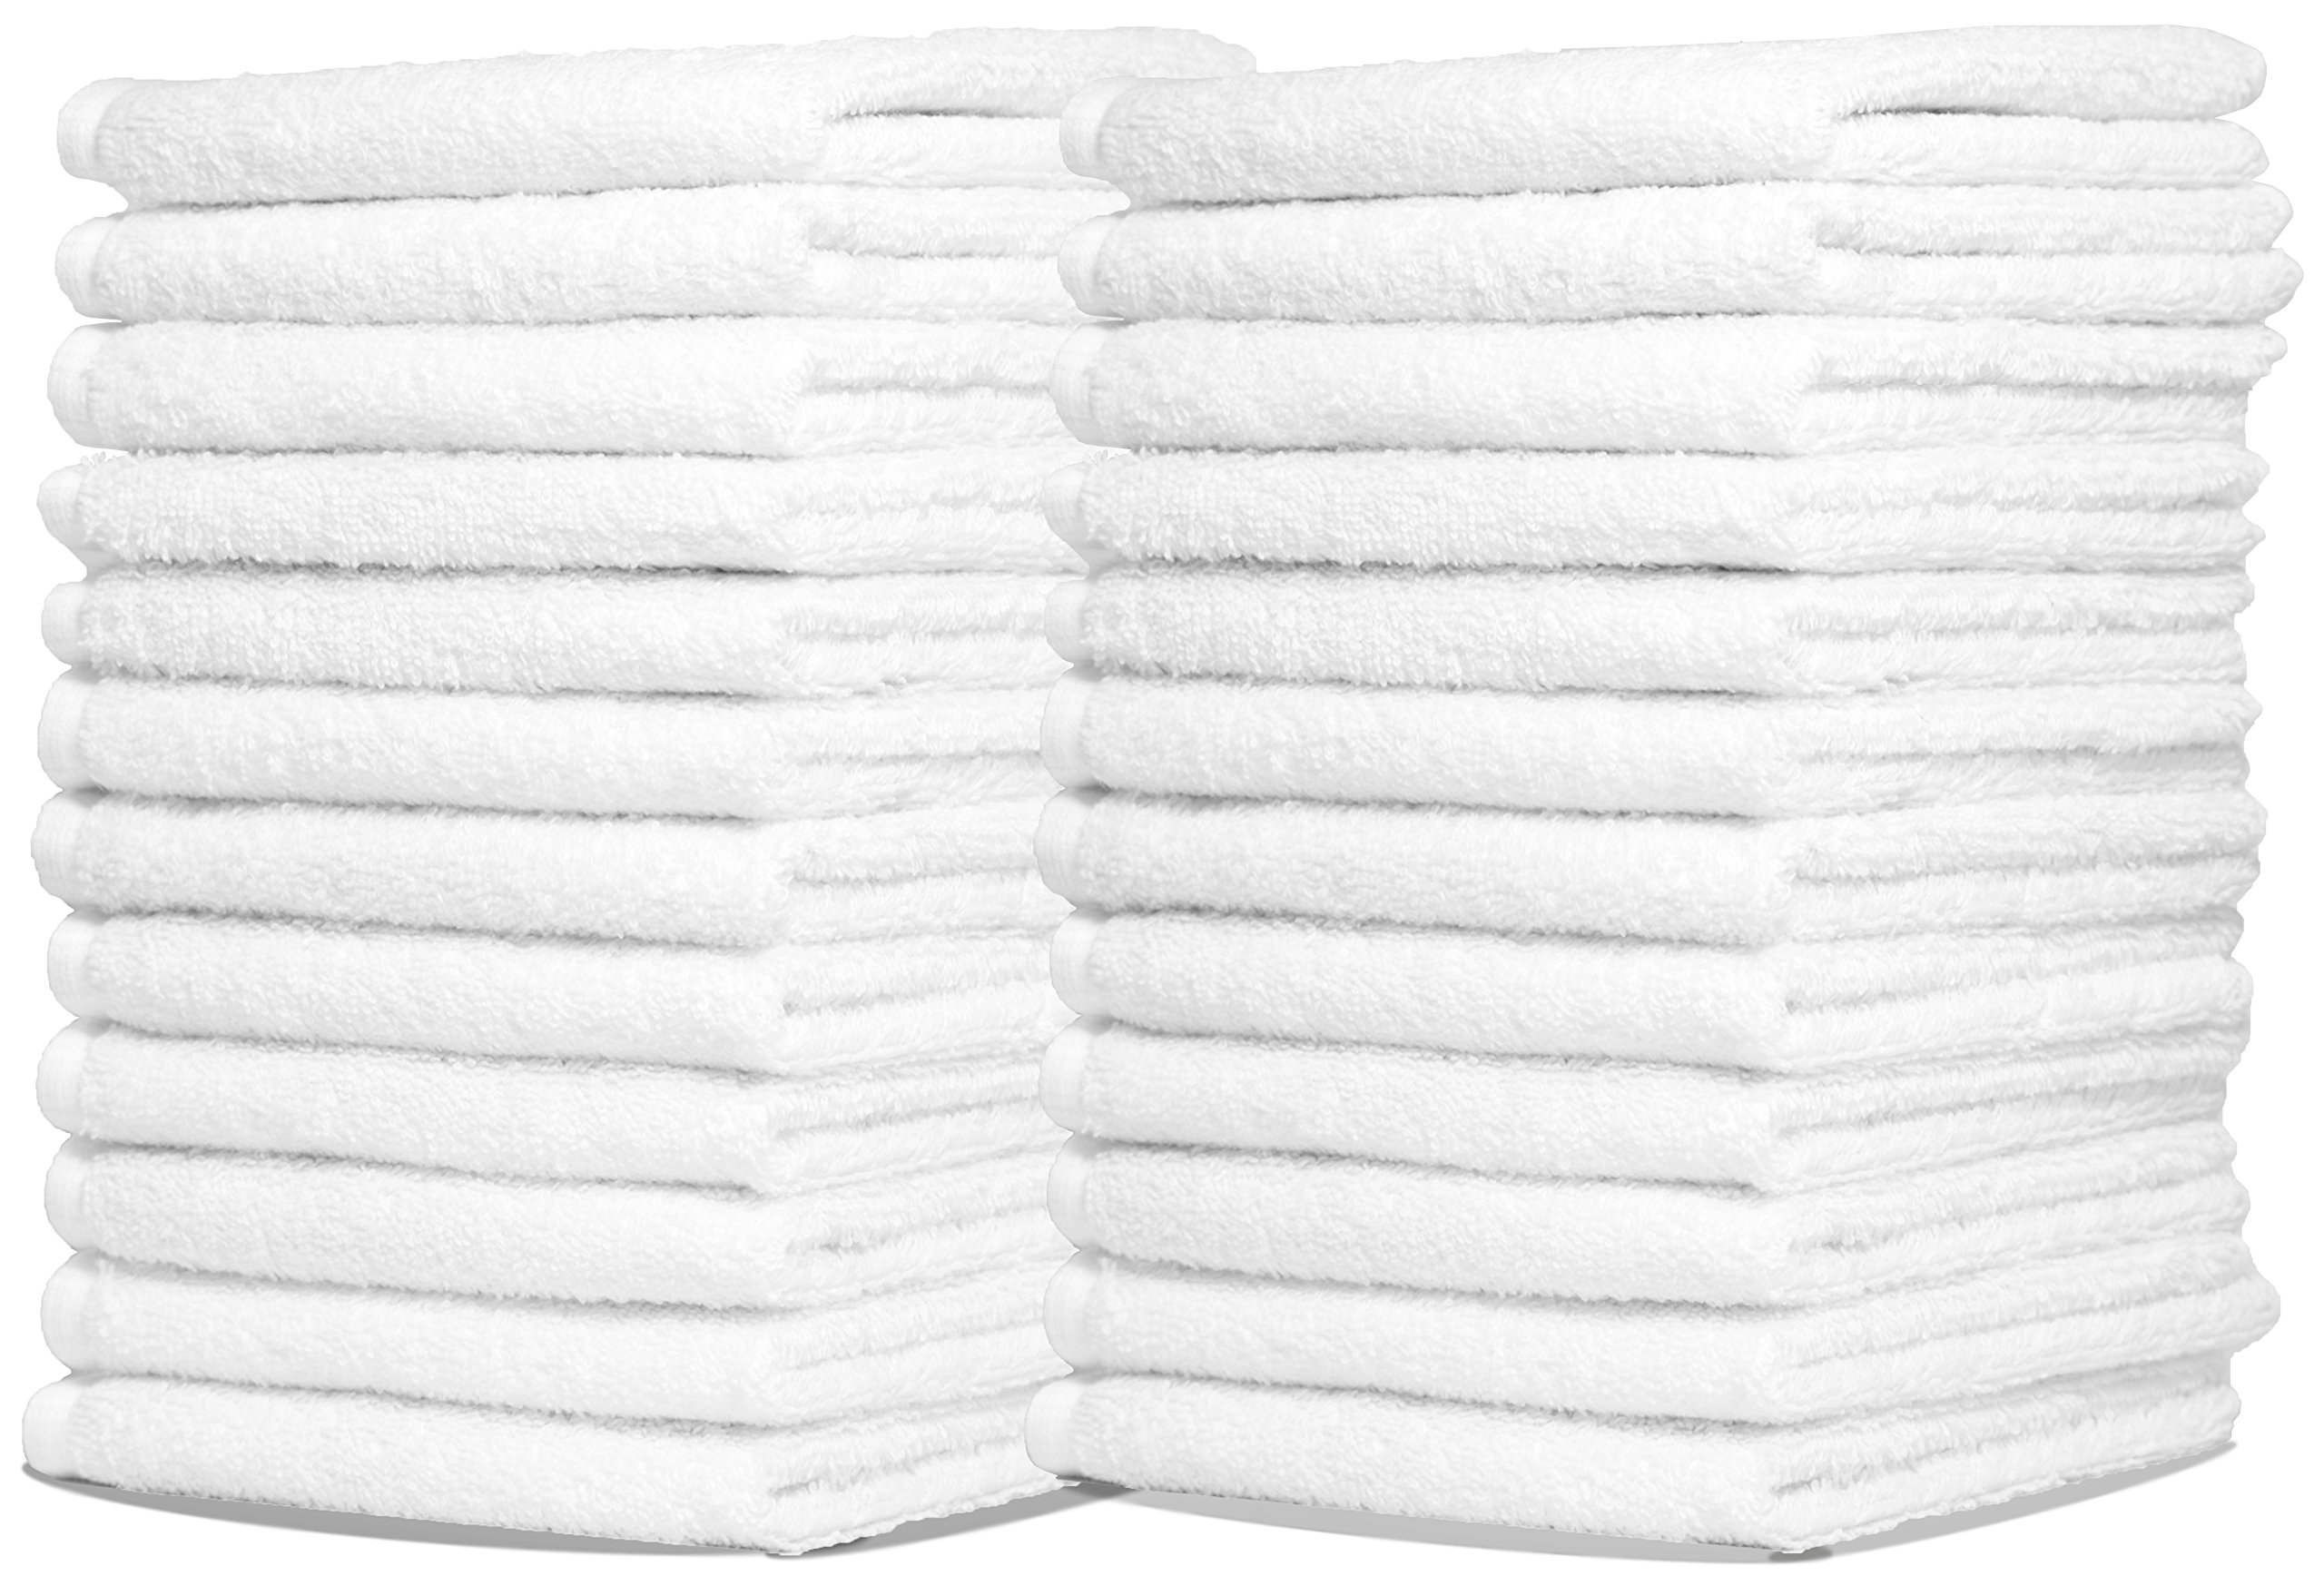 Royal Wash Cloth Towels by, 60-Pack, 100% Natural Cotton, 12 x 12, Soft and Absorbent, Machine Washable, White (60-Pack)